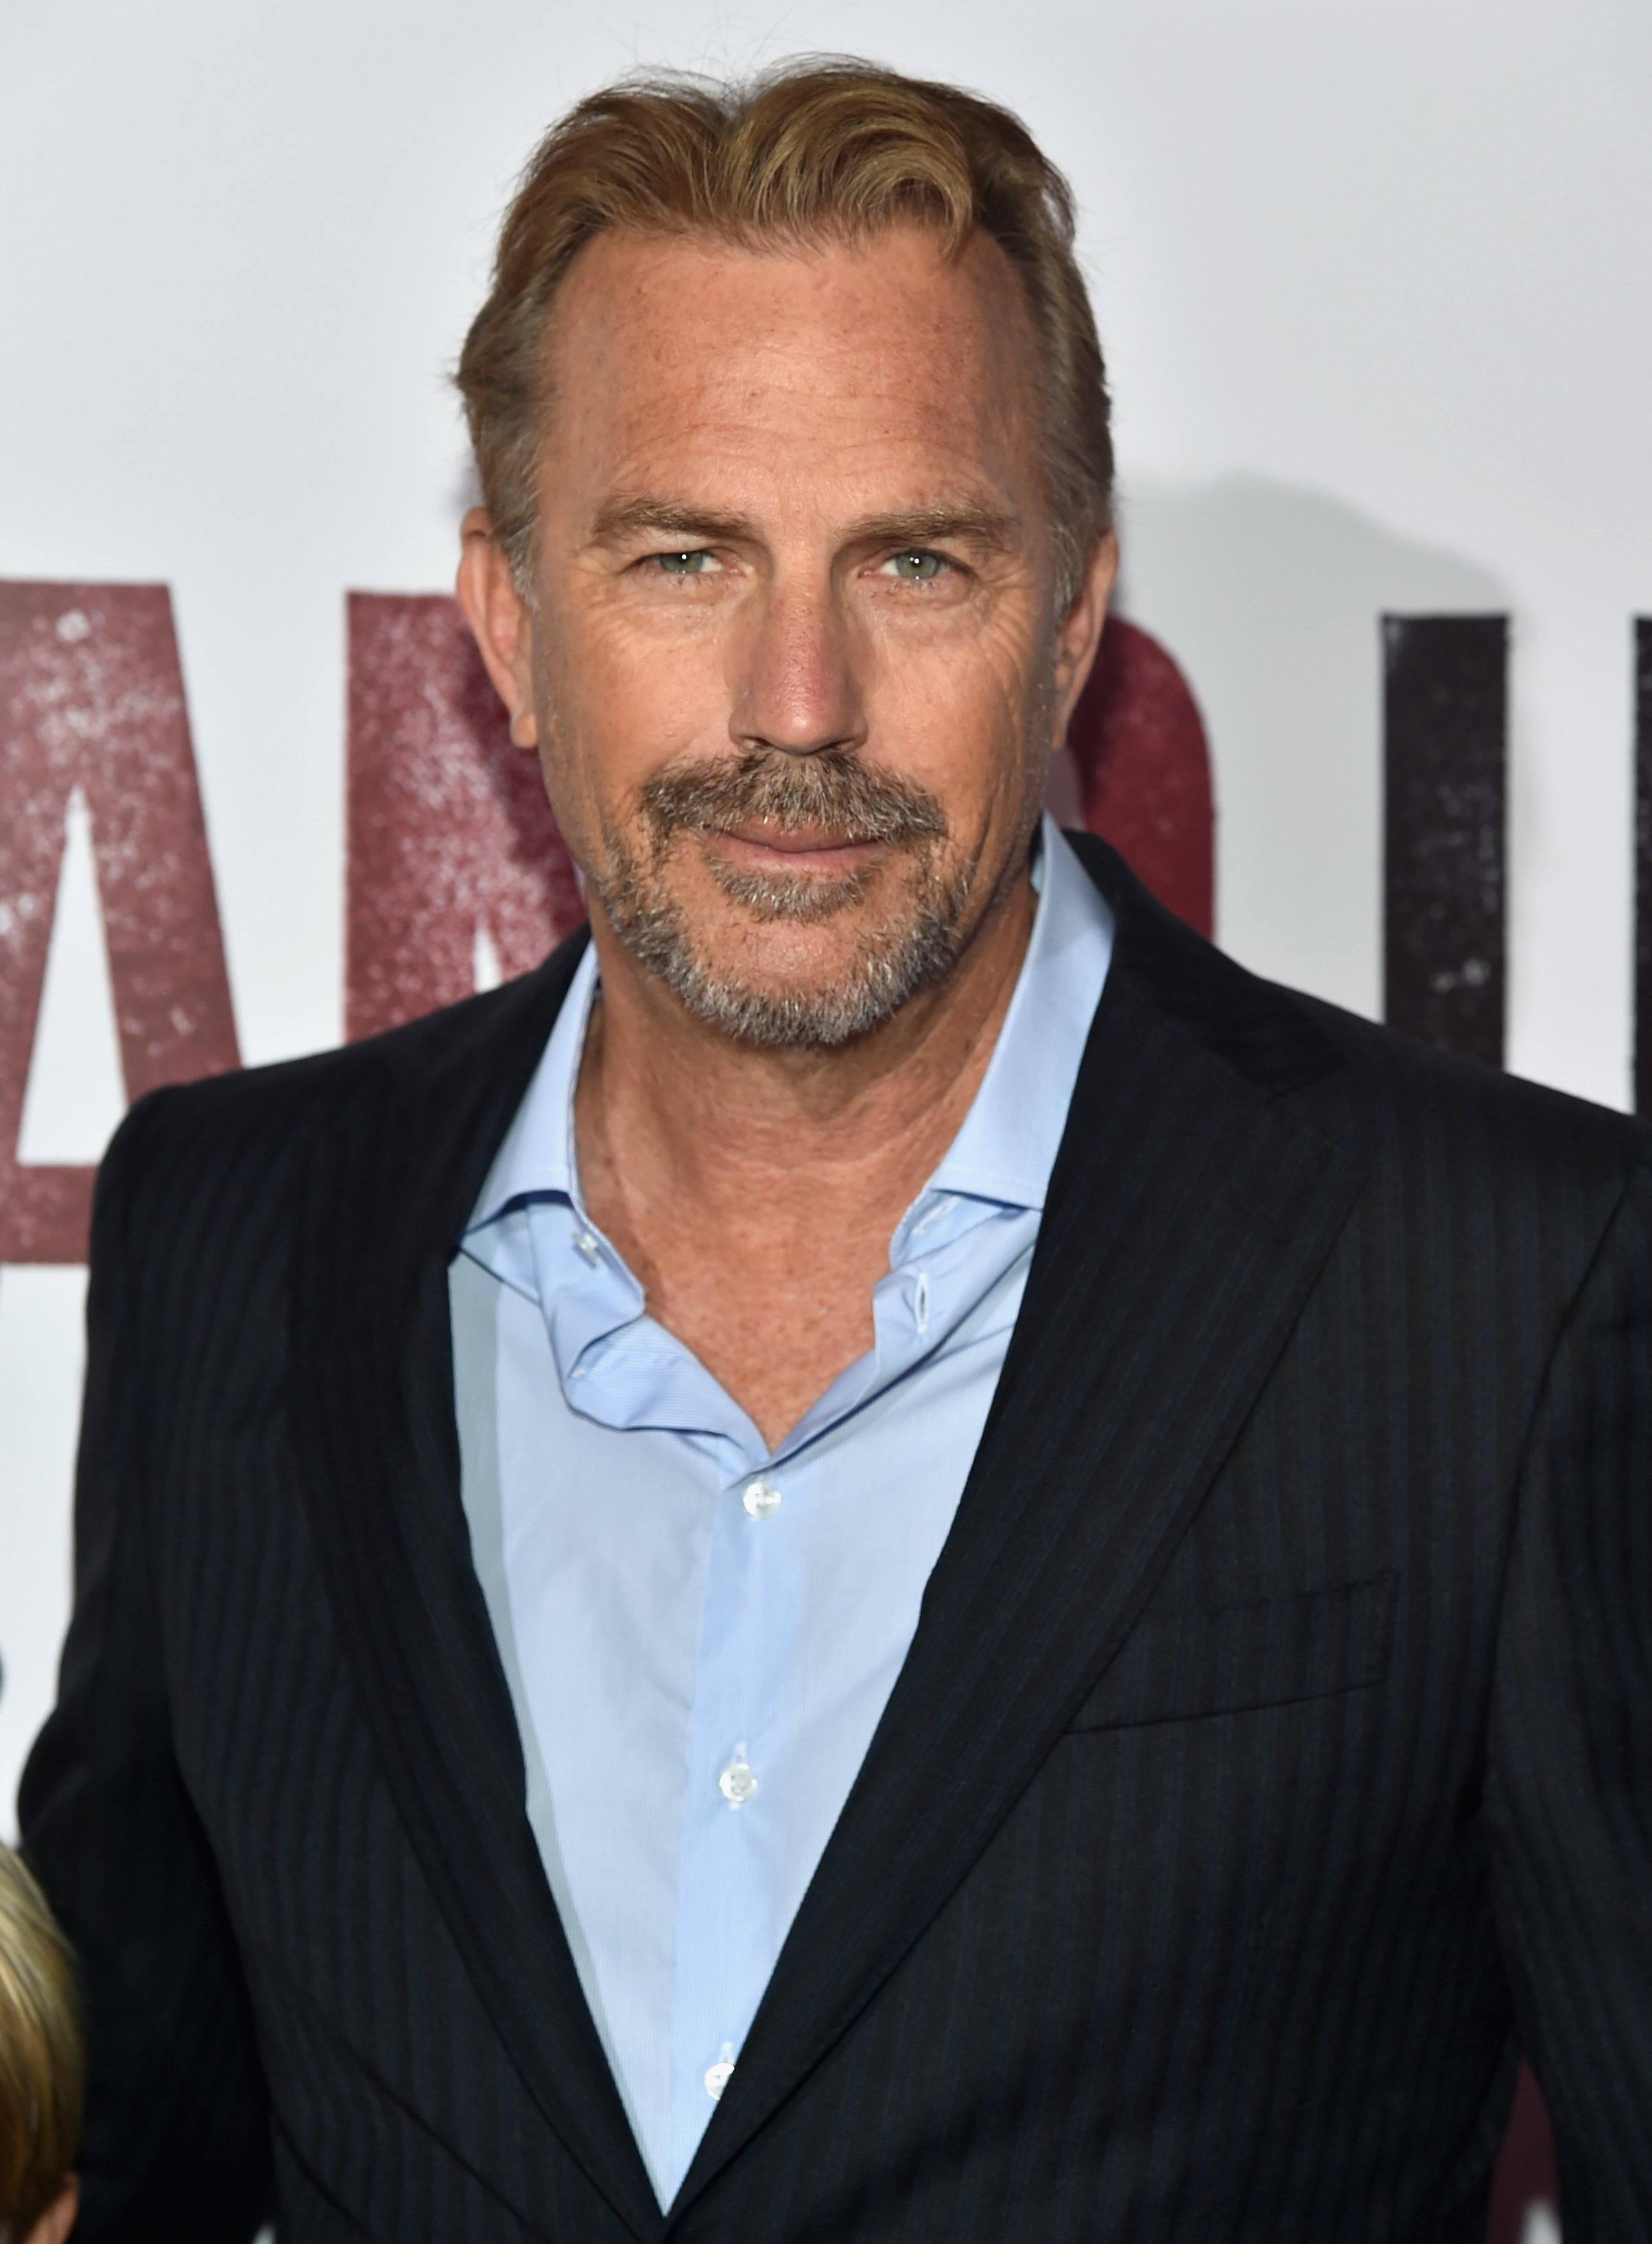 """Actor Kevin Costner attends the world premiere of """"McFarland, USA"""" at The El Capitan Theatre on February 9, 2015 in Hollywood, California.